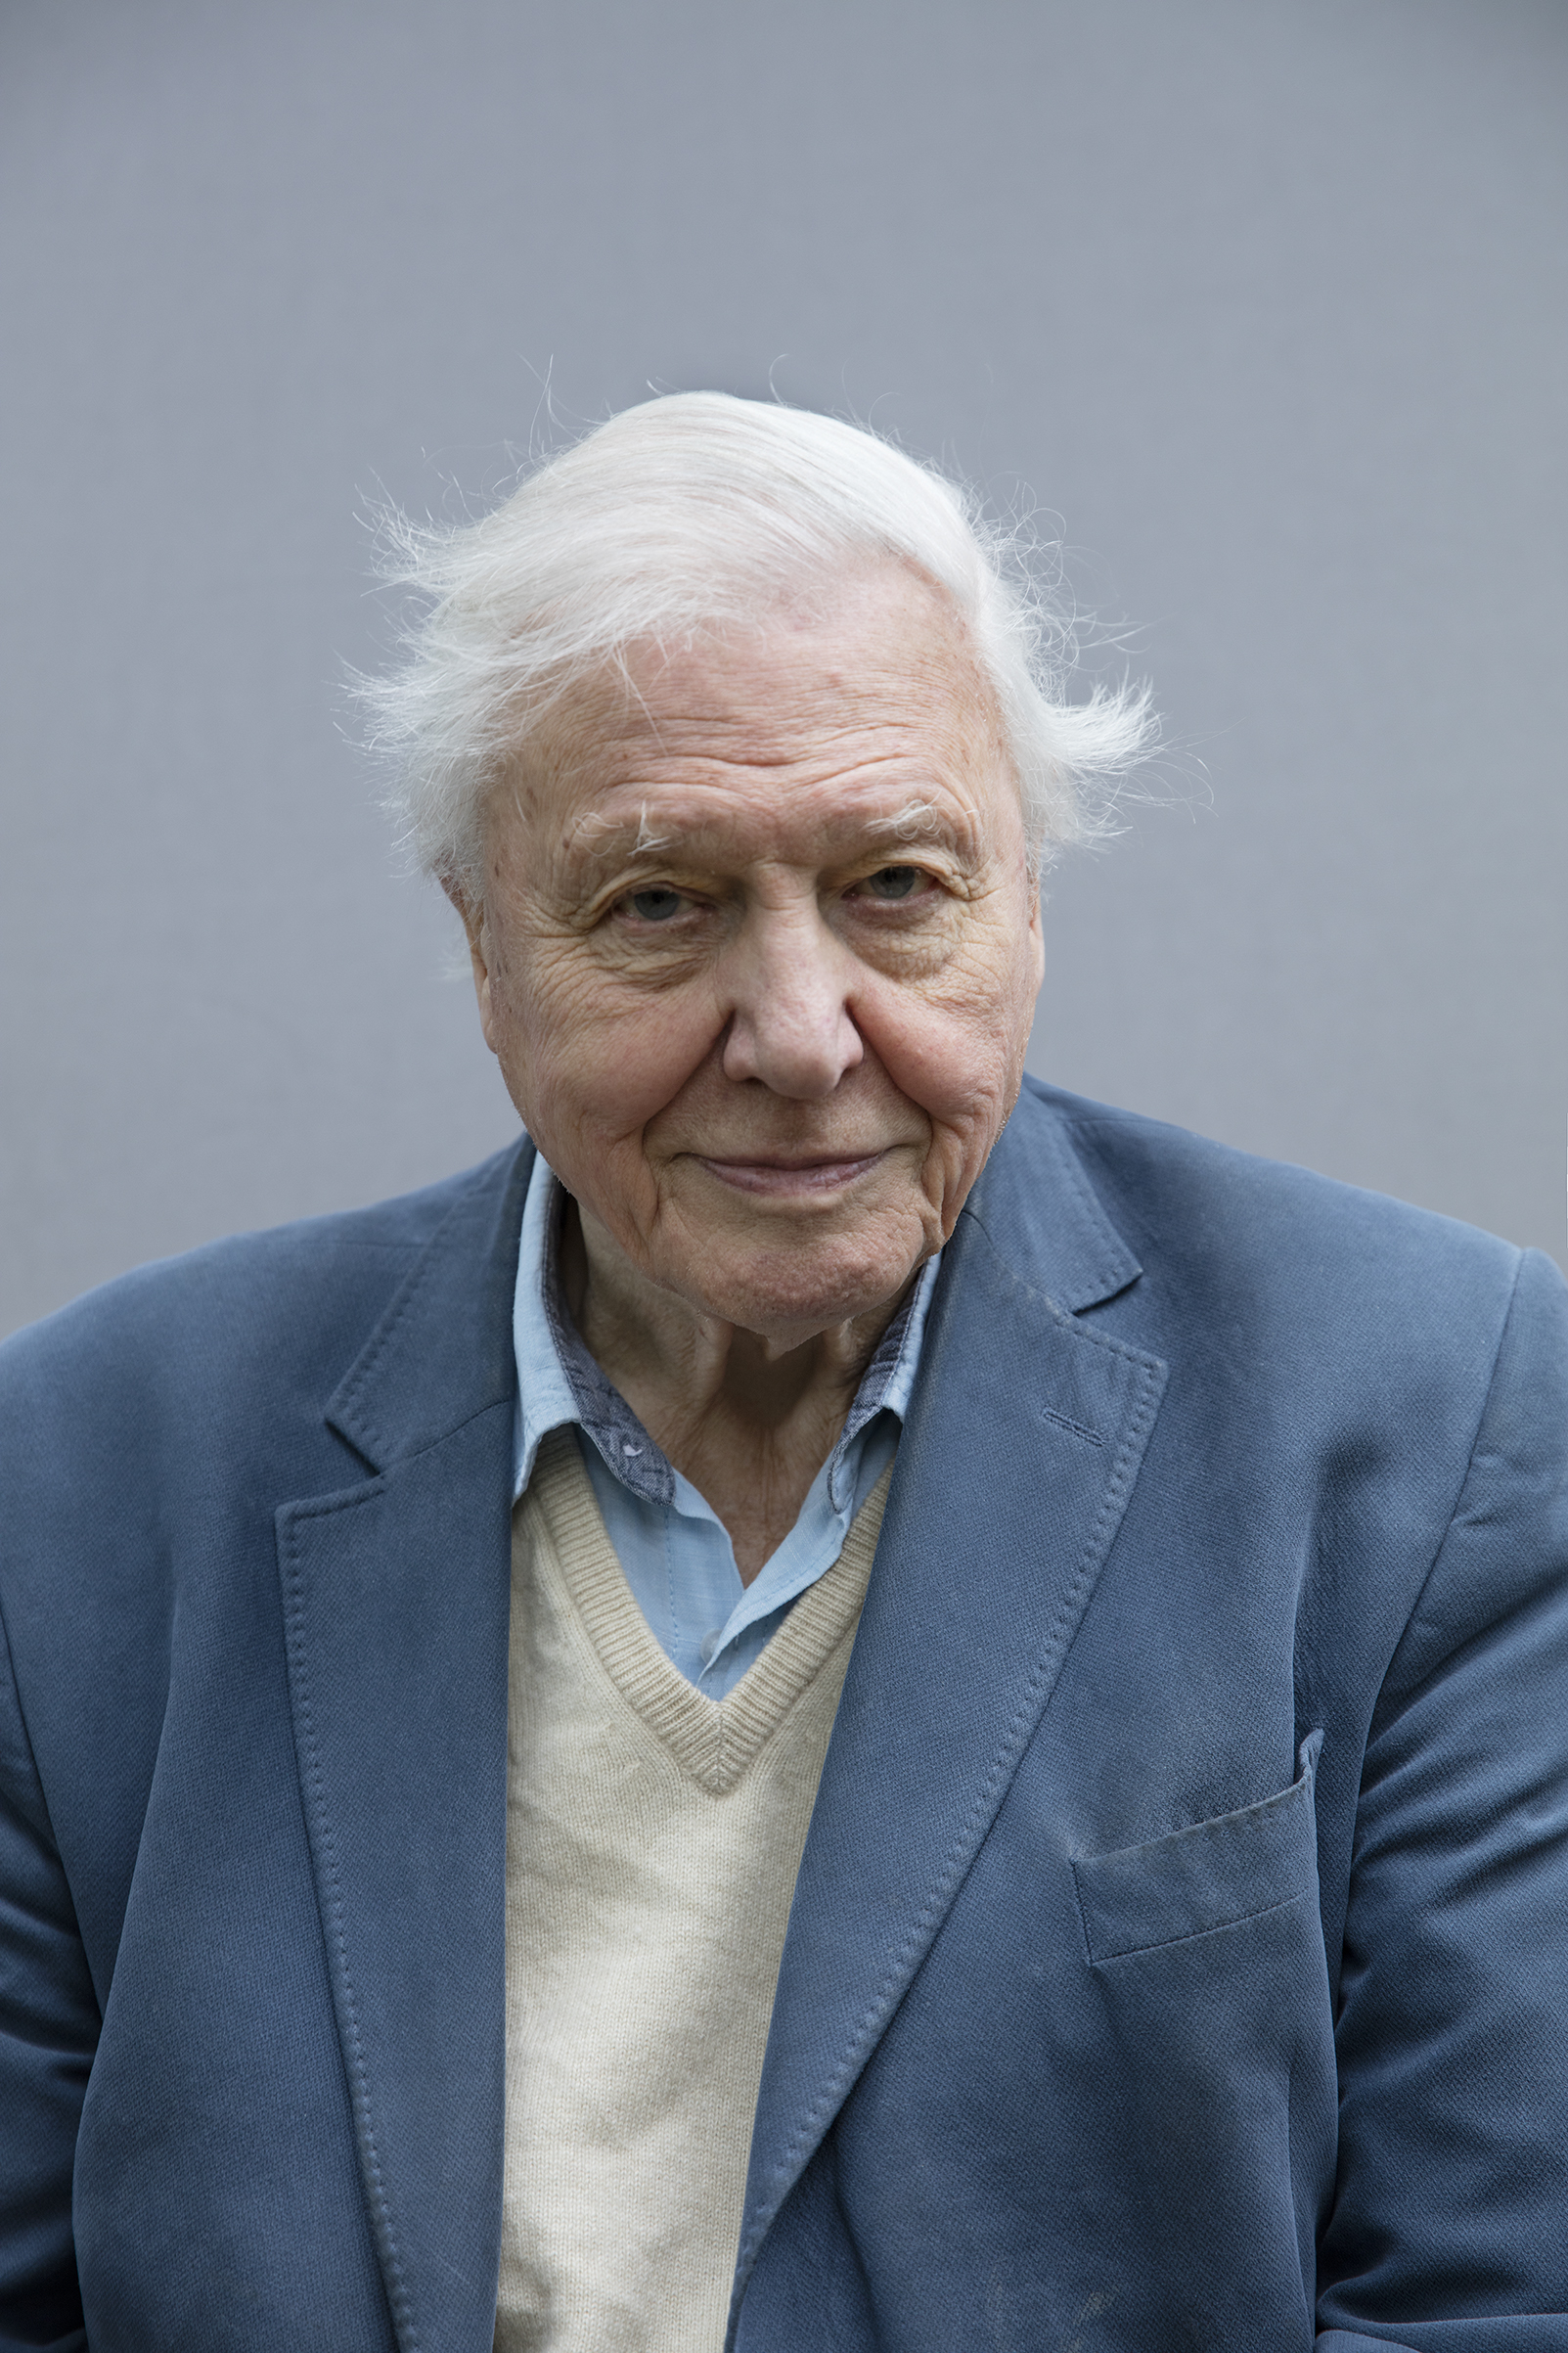 Sir David Attenborough poses for a portrait at the Royal Botanic Gardens, Kew, London, in February.